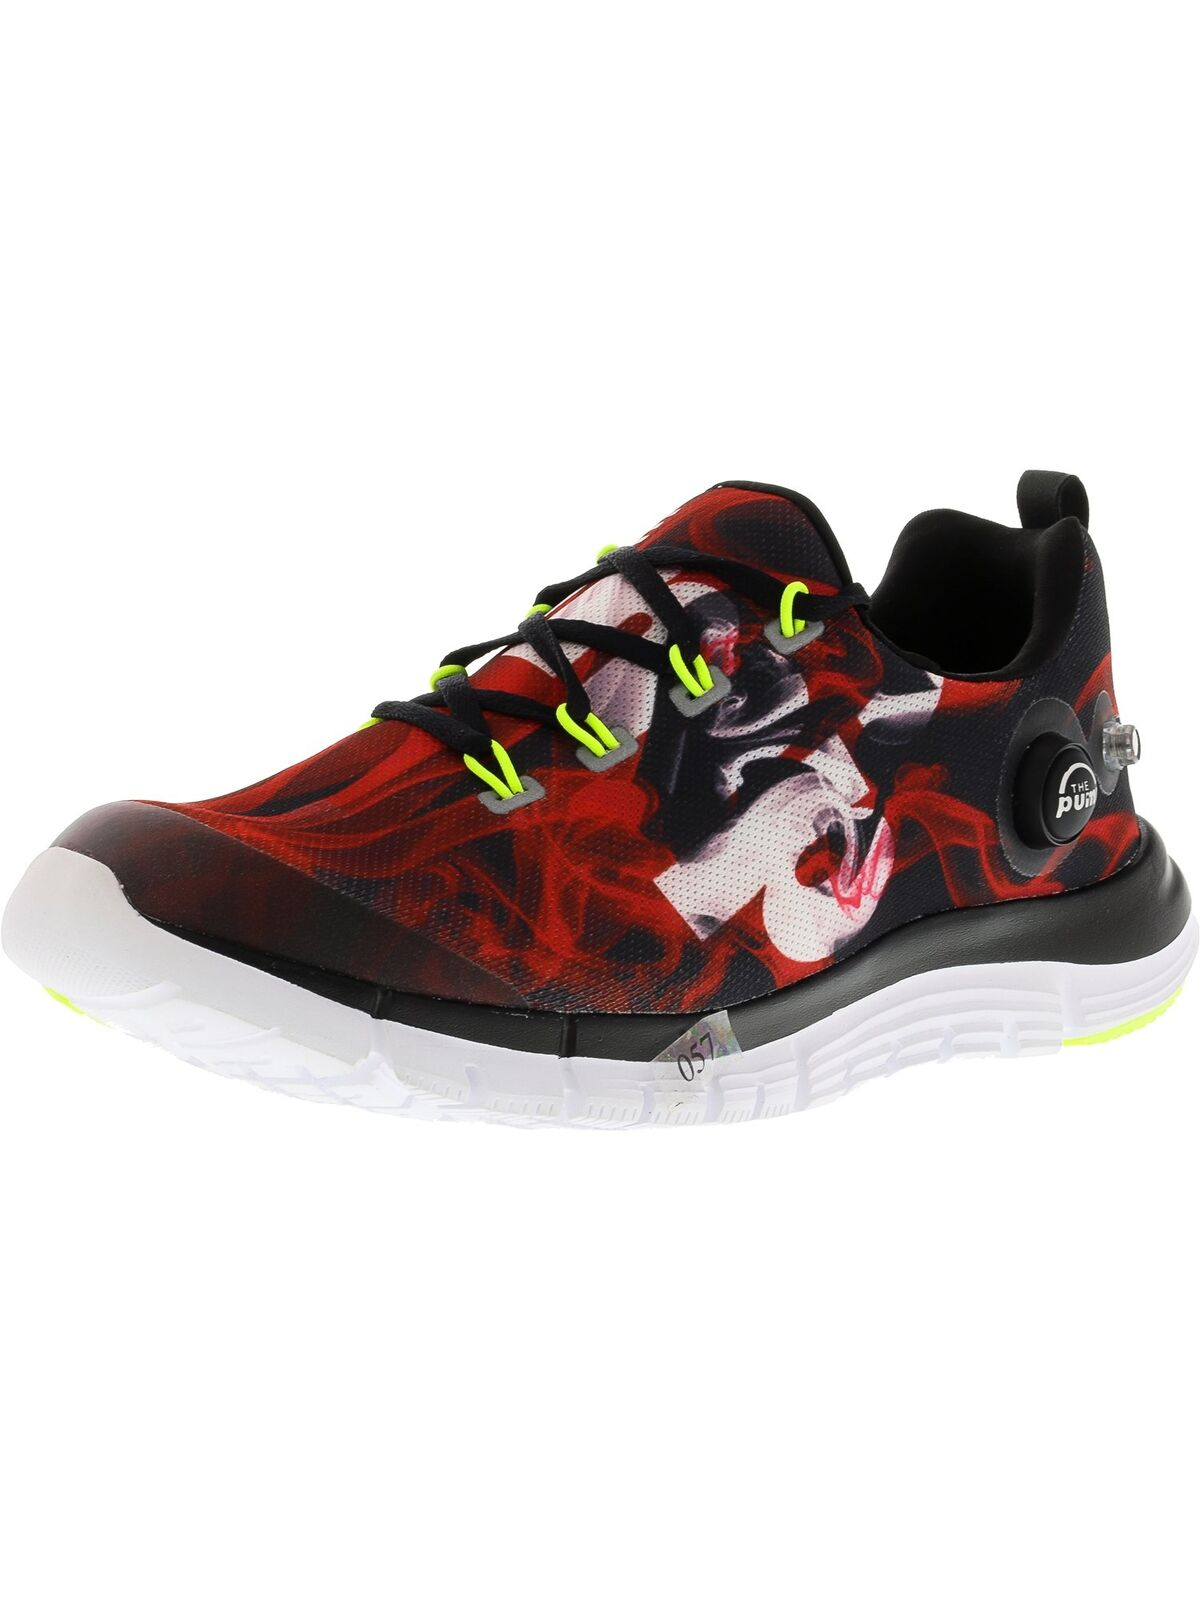 Reebok Men's Z Pump Fusion Flame Ankle-High Fabric Running shoes